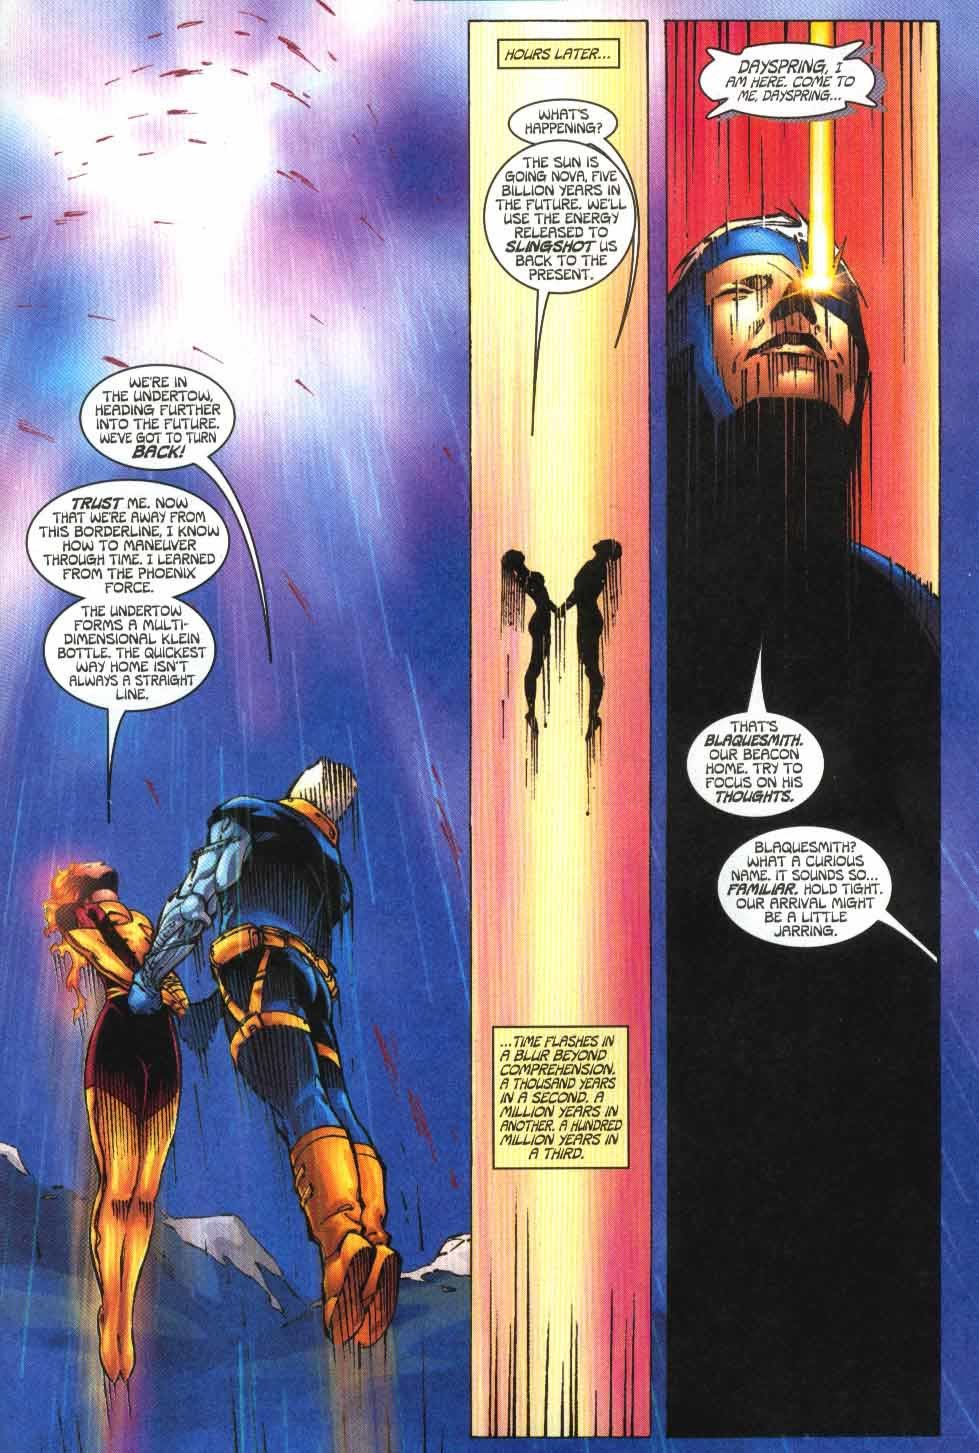 Travels from 2 billion years in the future back to the Present by going further into the future first. (Despite the costume and flaming hair, it's explained that she has lost the Phoenix at this point.) - Cable v1 #86